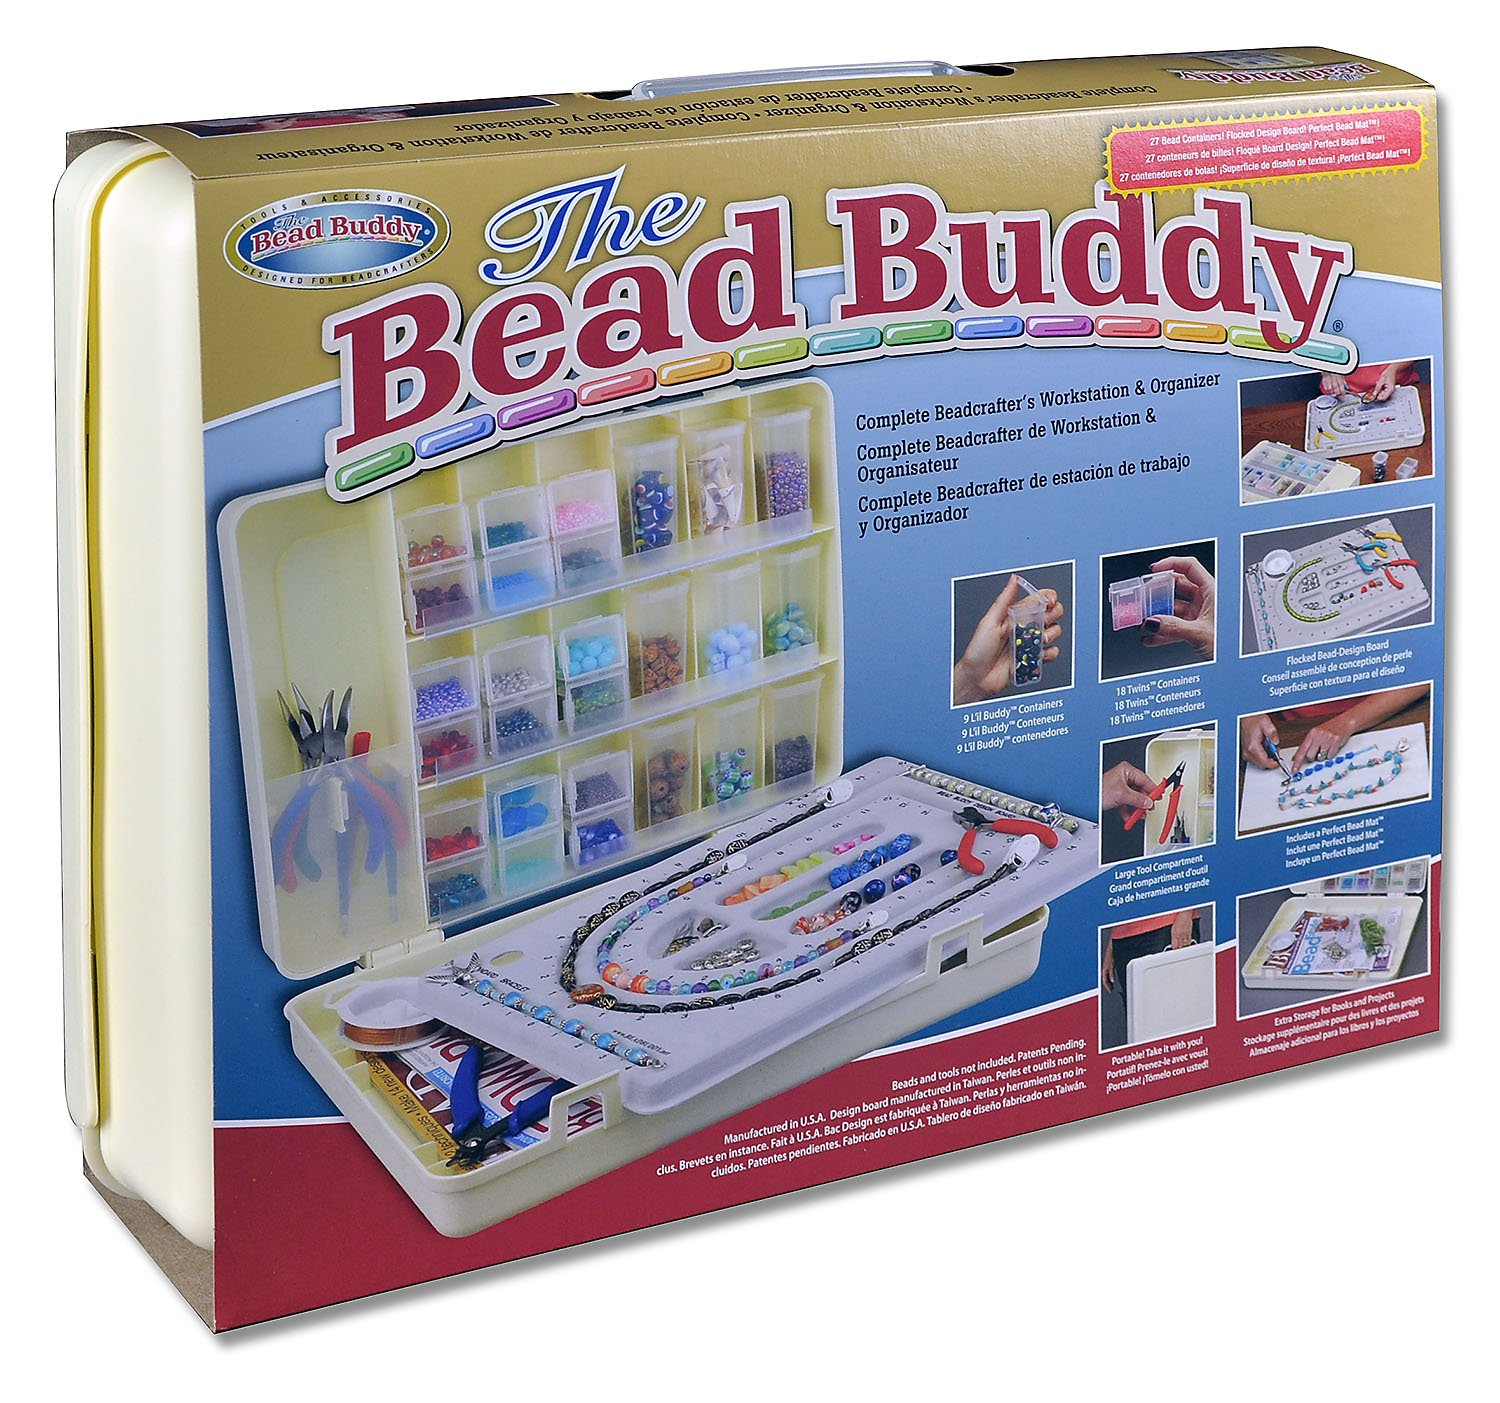 Bead Buddy Complete Beadcrafter's Workstation And Organizer-Beading Supplies-Jewelry Making Supplies And Storage by Bead Buddy